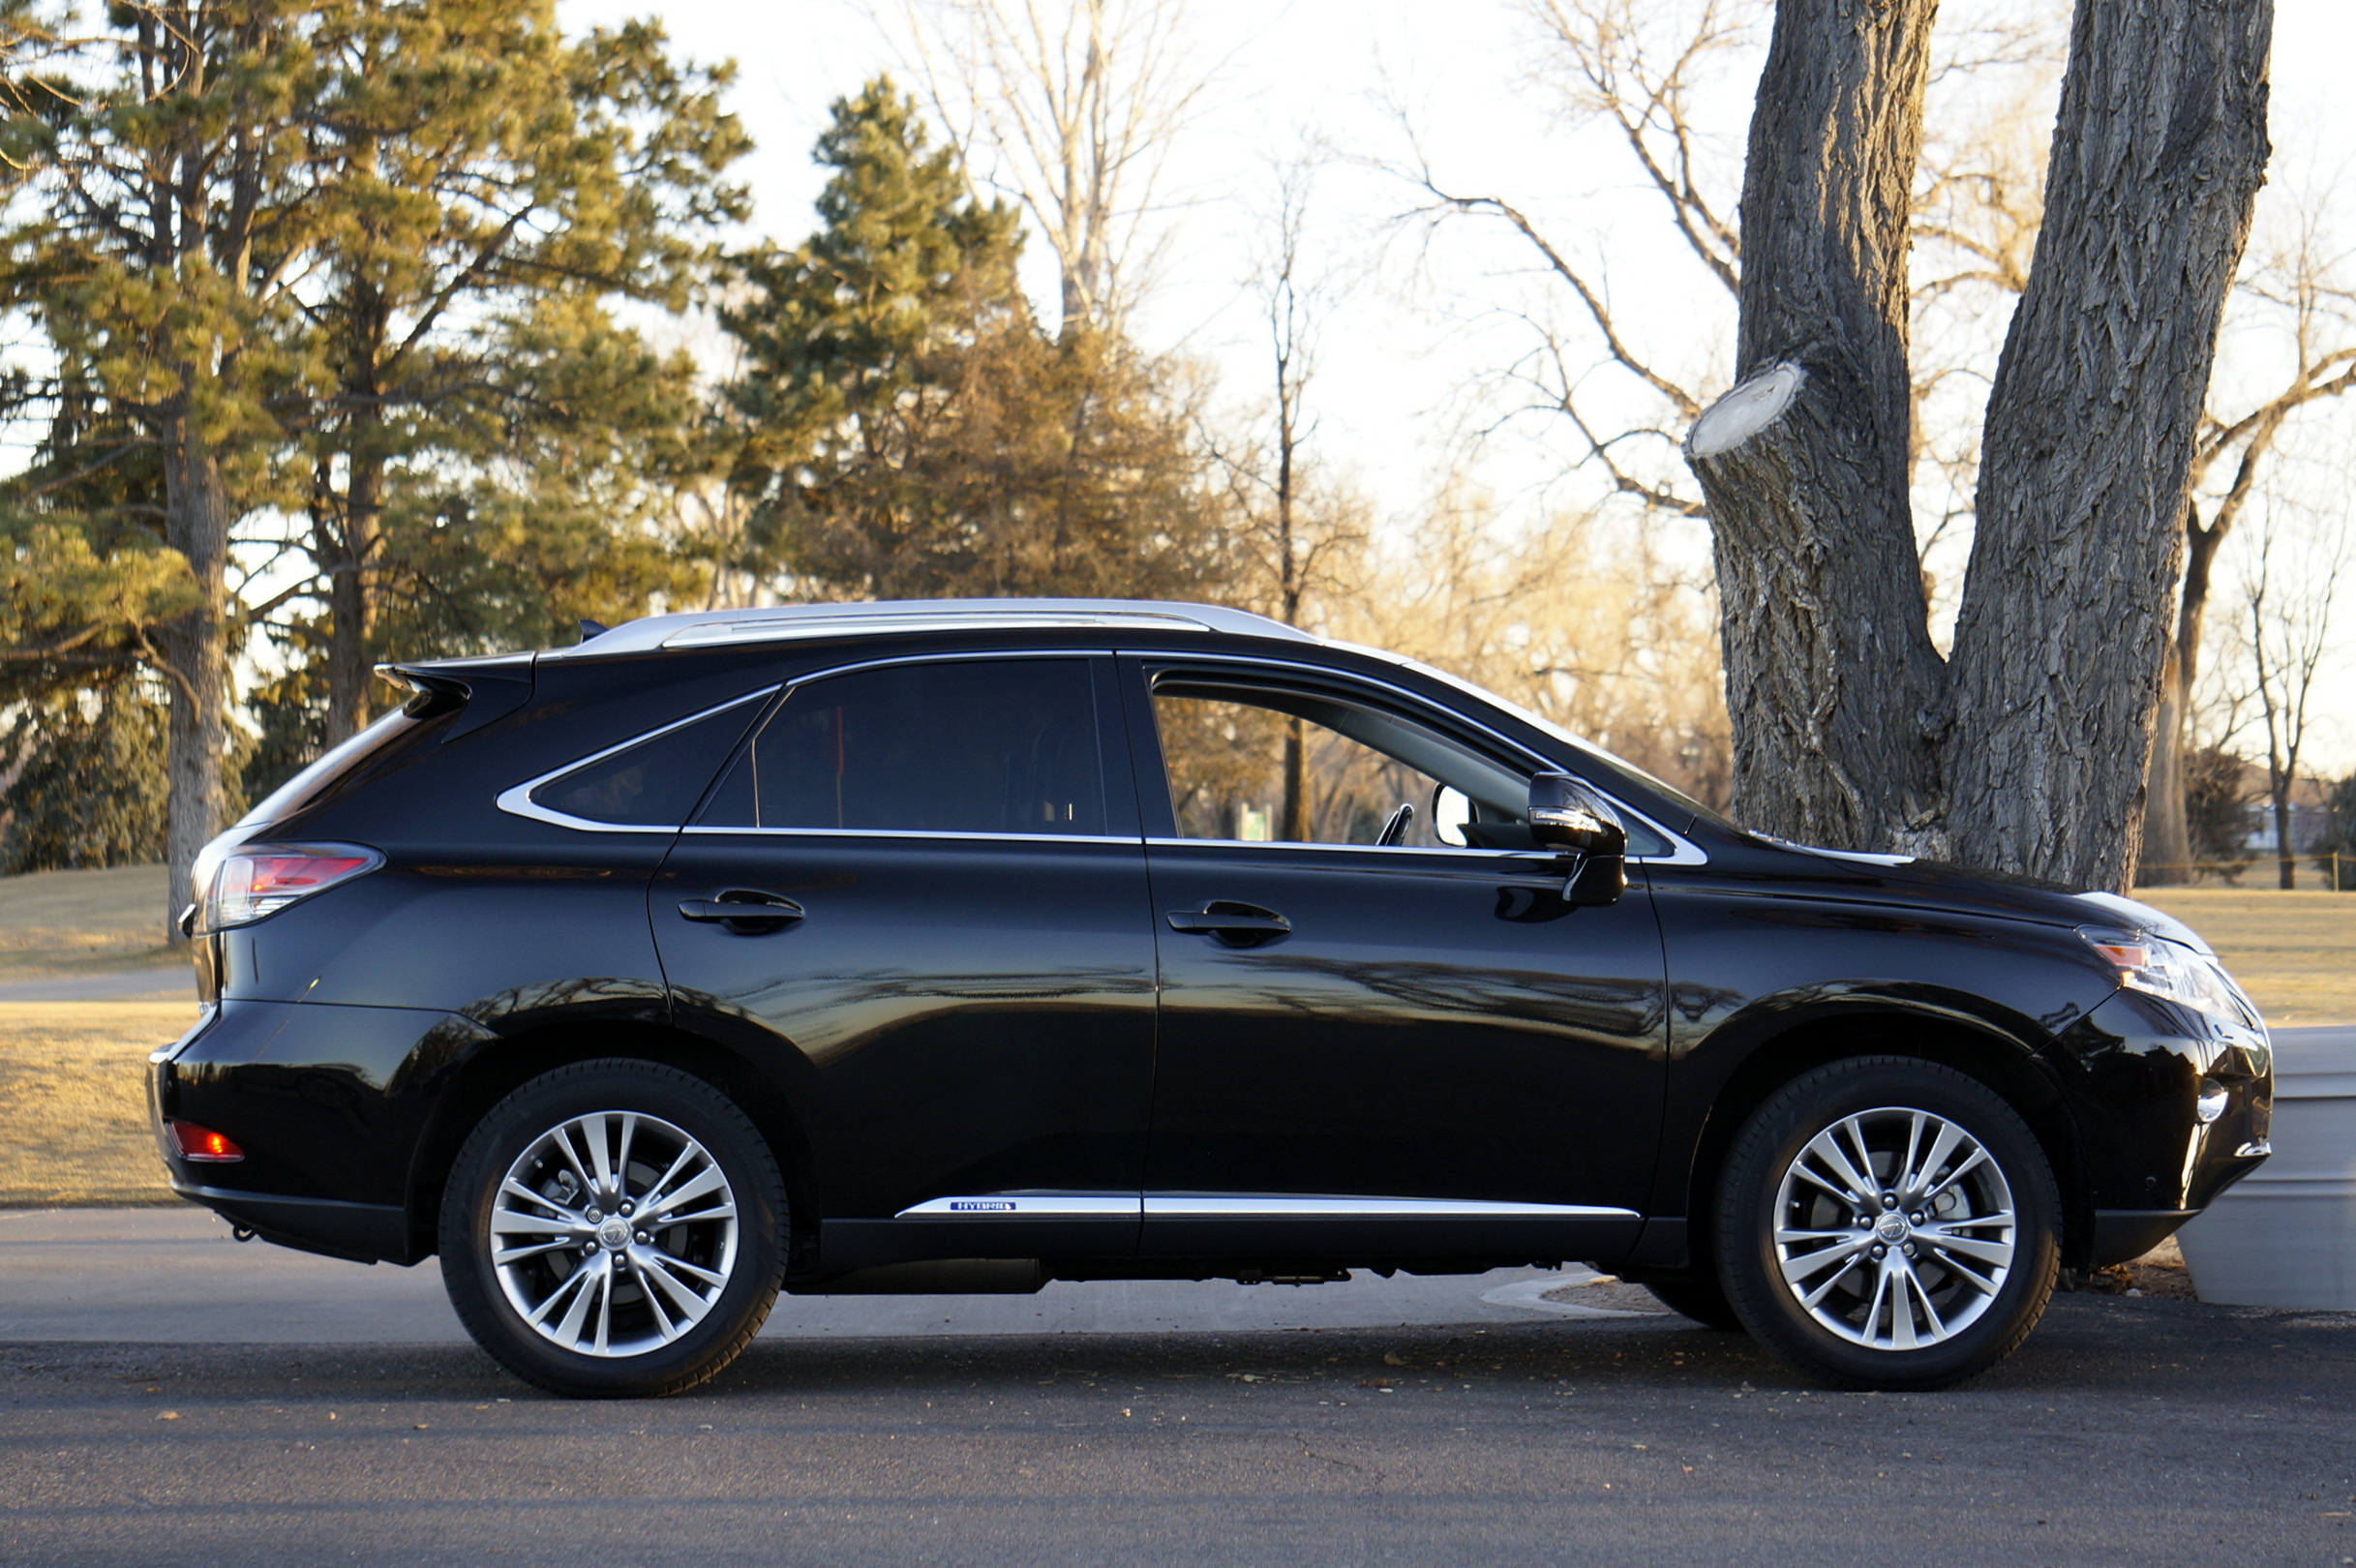 road roader can lexus img snow review luxury off any suv gx anything offroader stop this